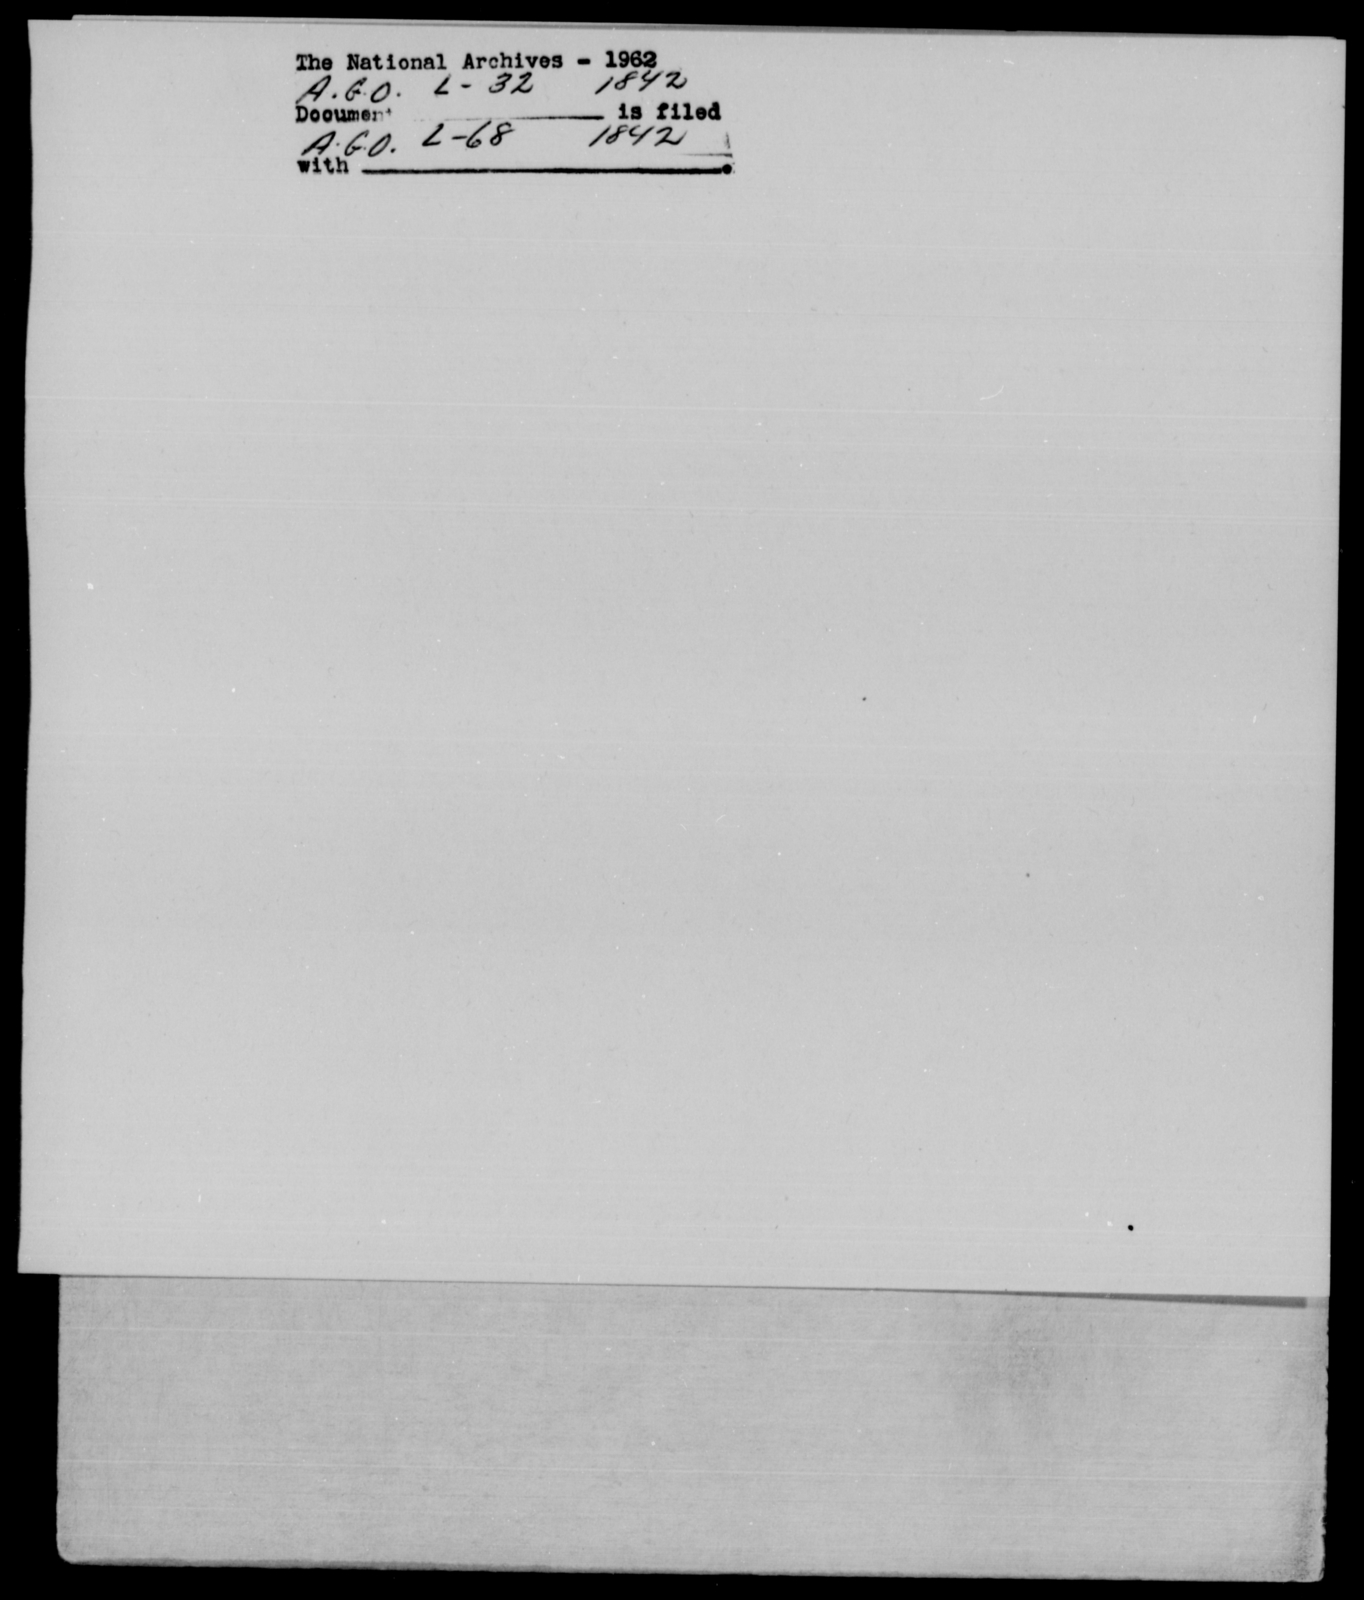 [Blank], [Blank] - State: New York - Year: 1842 - File Number: L32